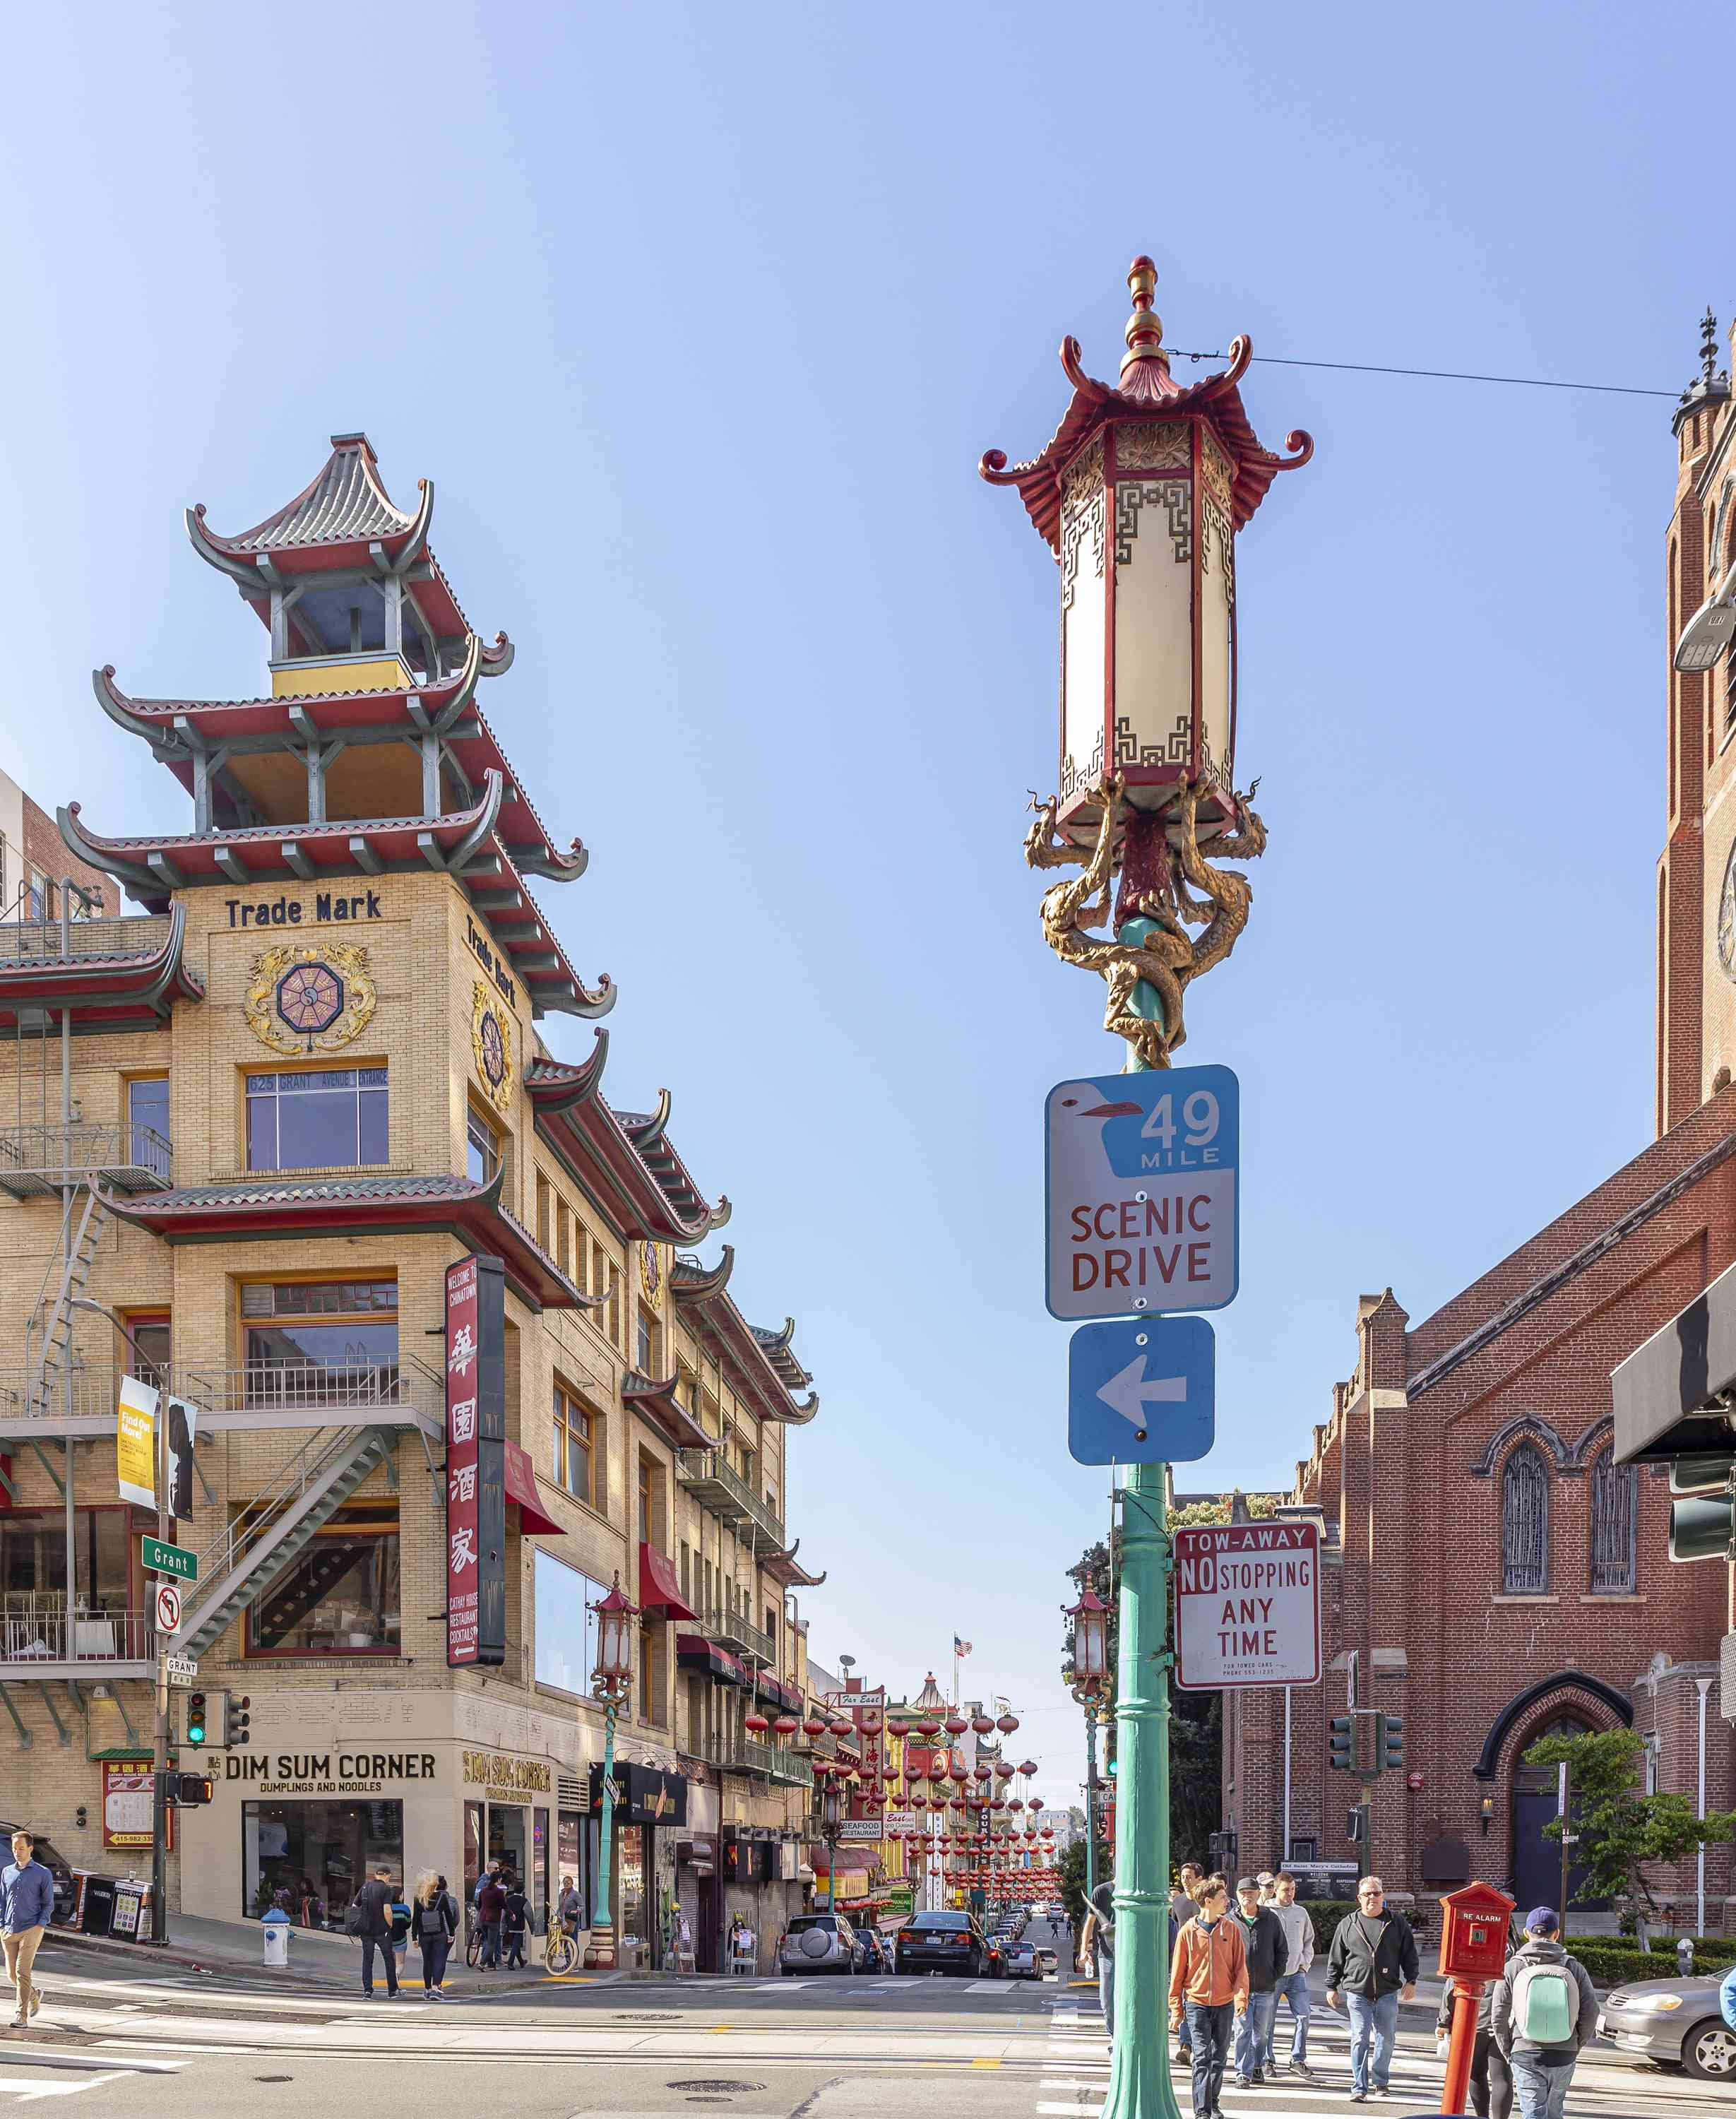 A sign for the 49 Mile scenic drive in Chinatown